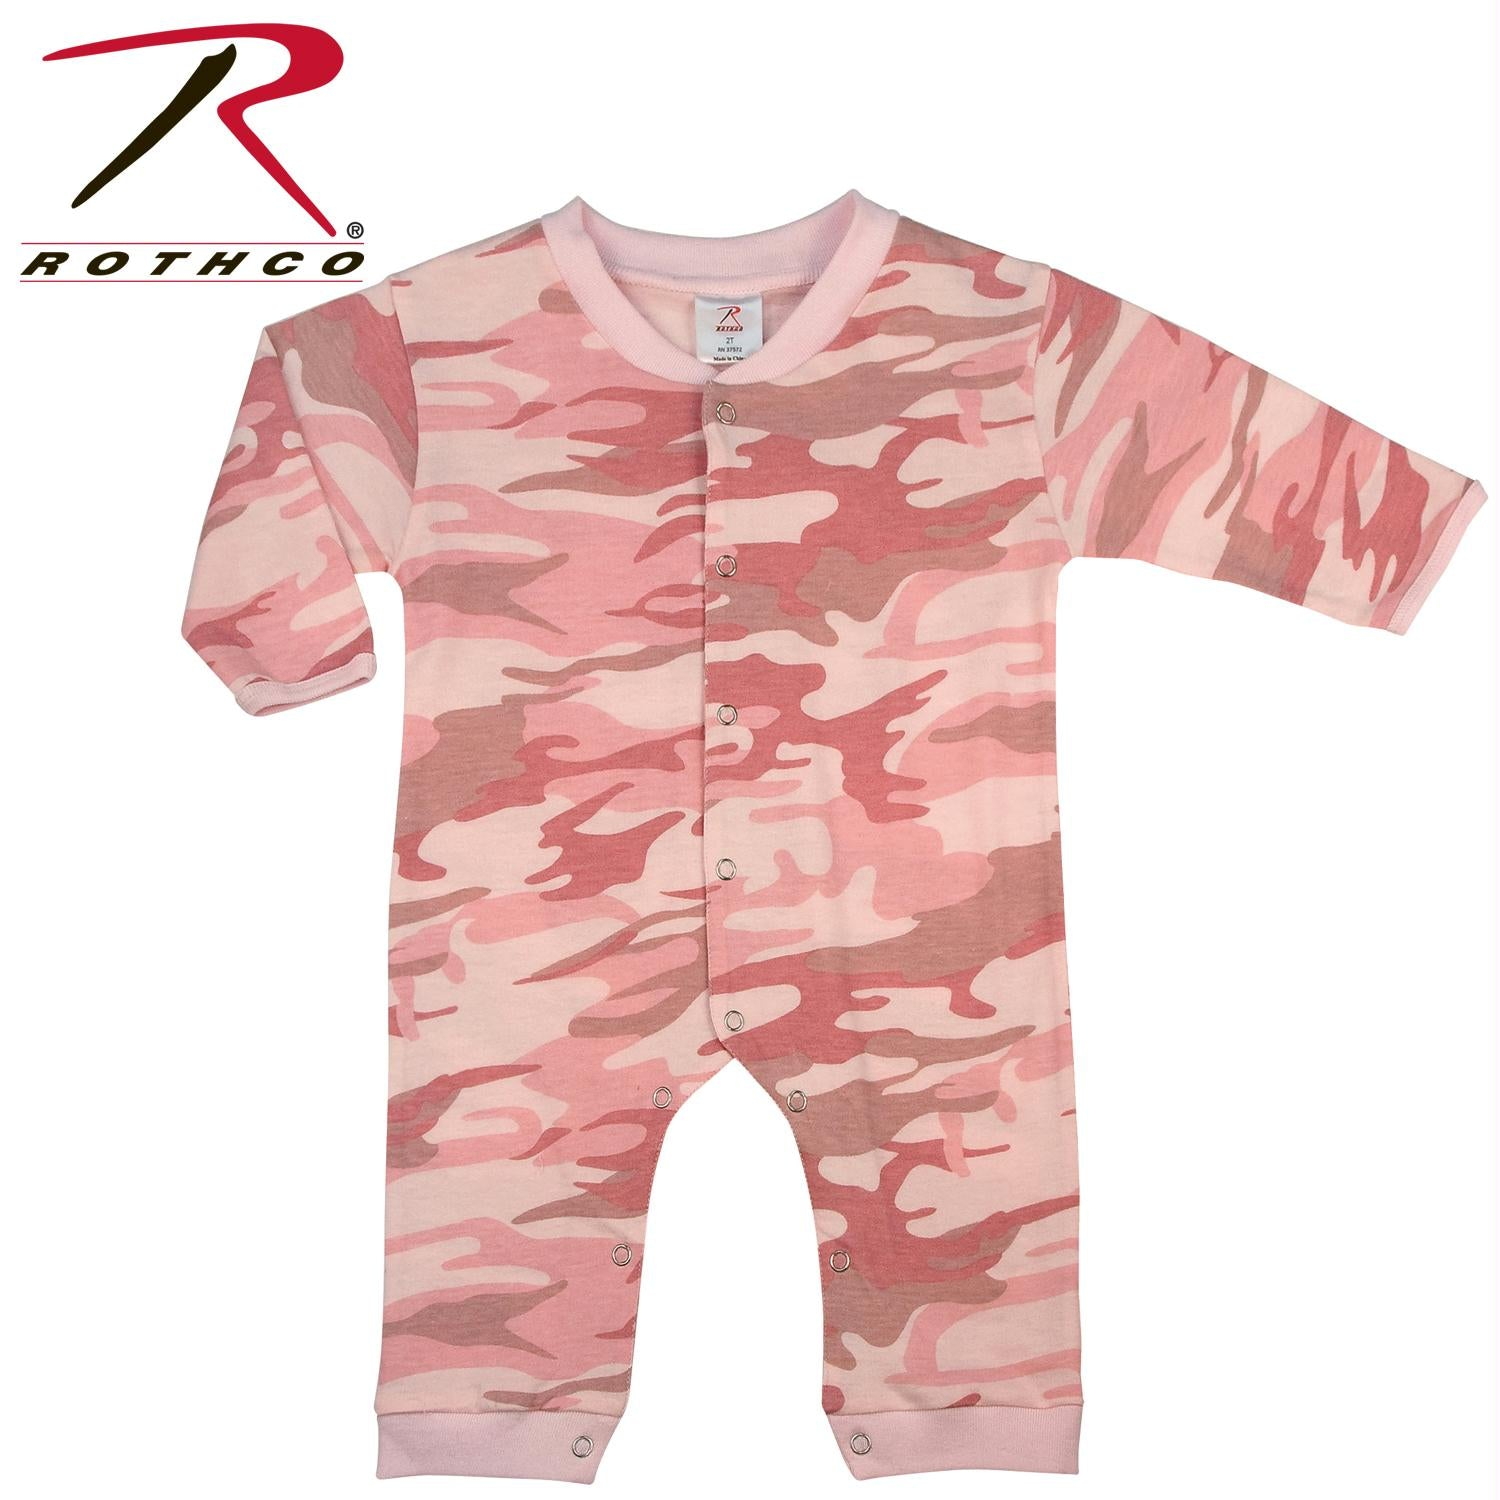 Rothco Infant Camo Long Sleeve and Leg One-piece Bodysuit - Pink Camo / 2T